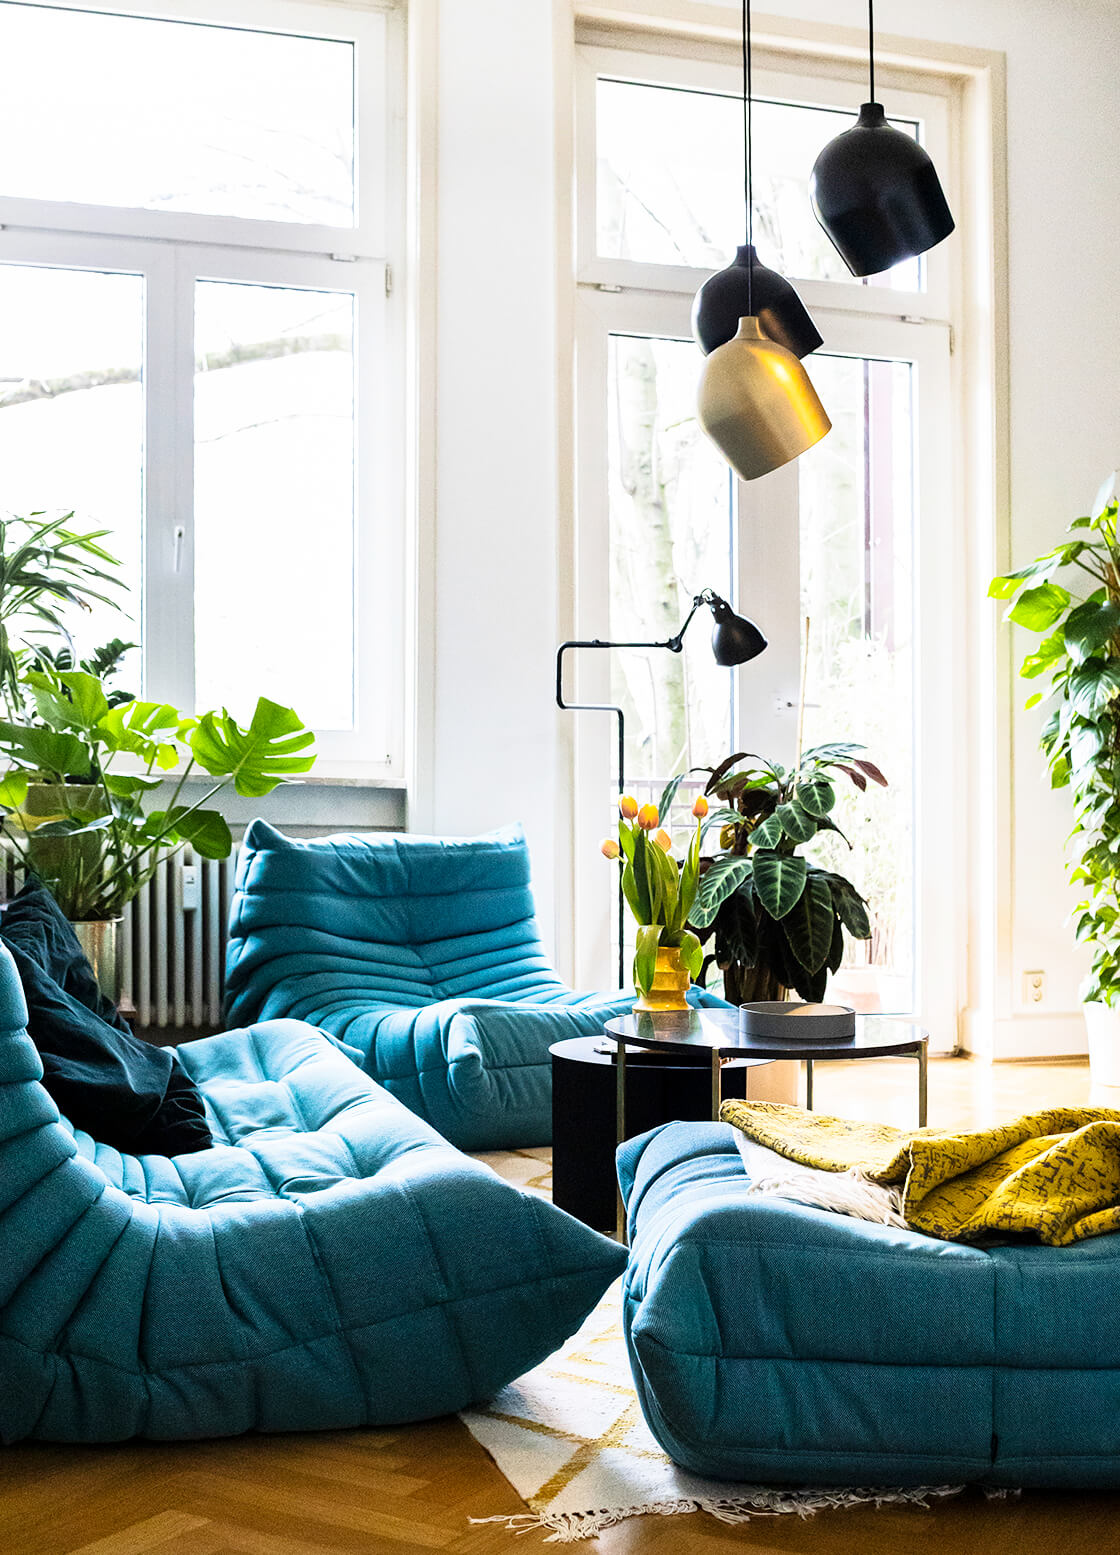 indiangoodsco_blog_stories_design inspiration_home tour_colourful minimal apartment_frankfurt_7